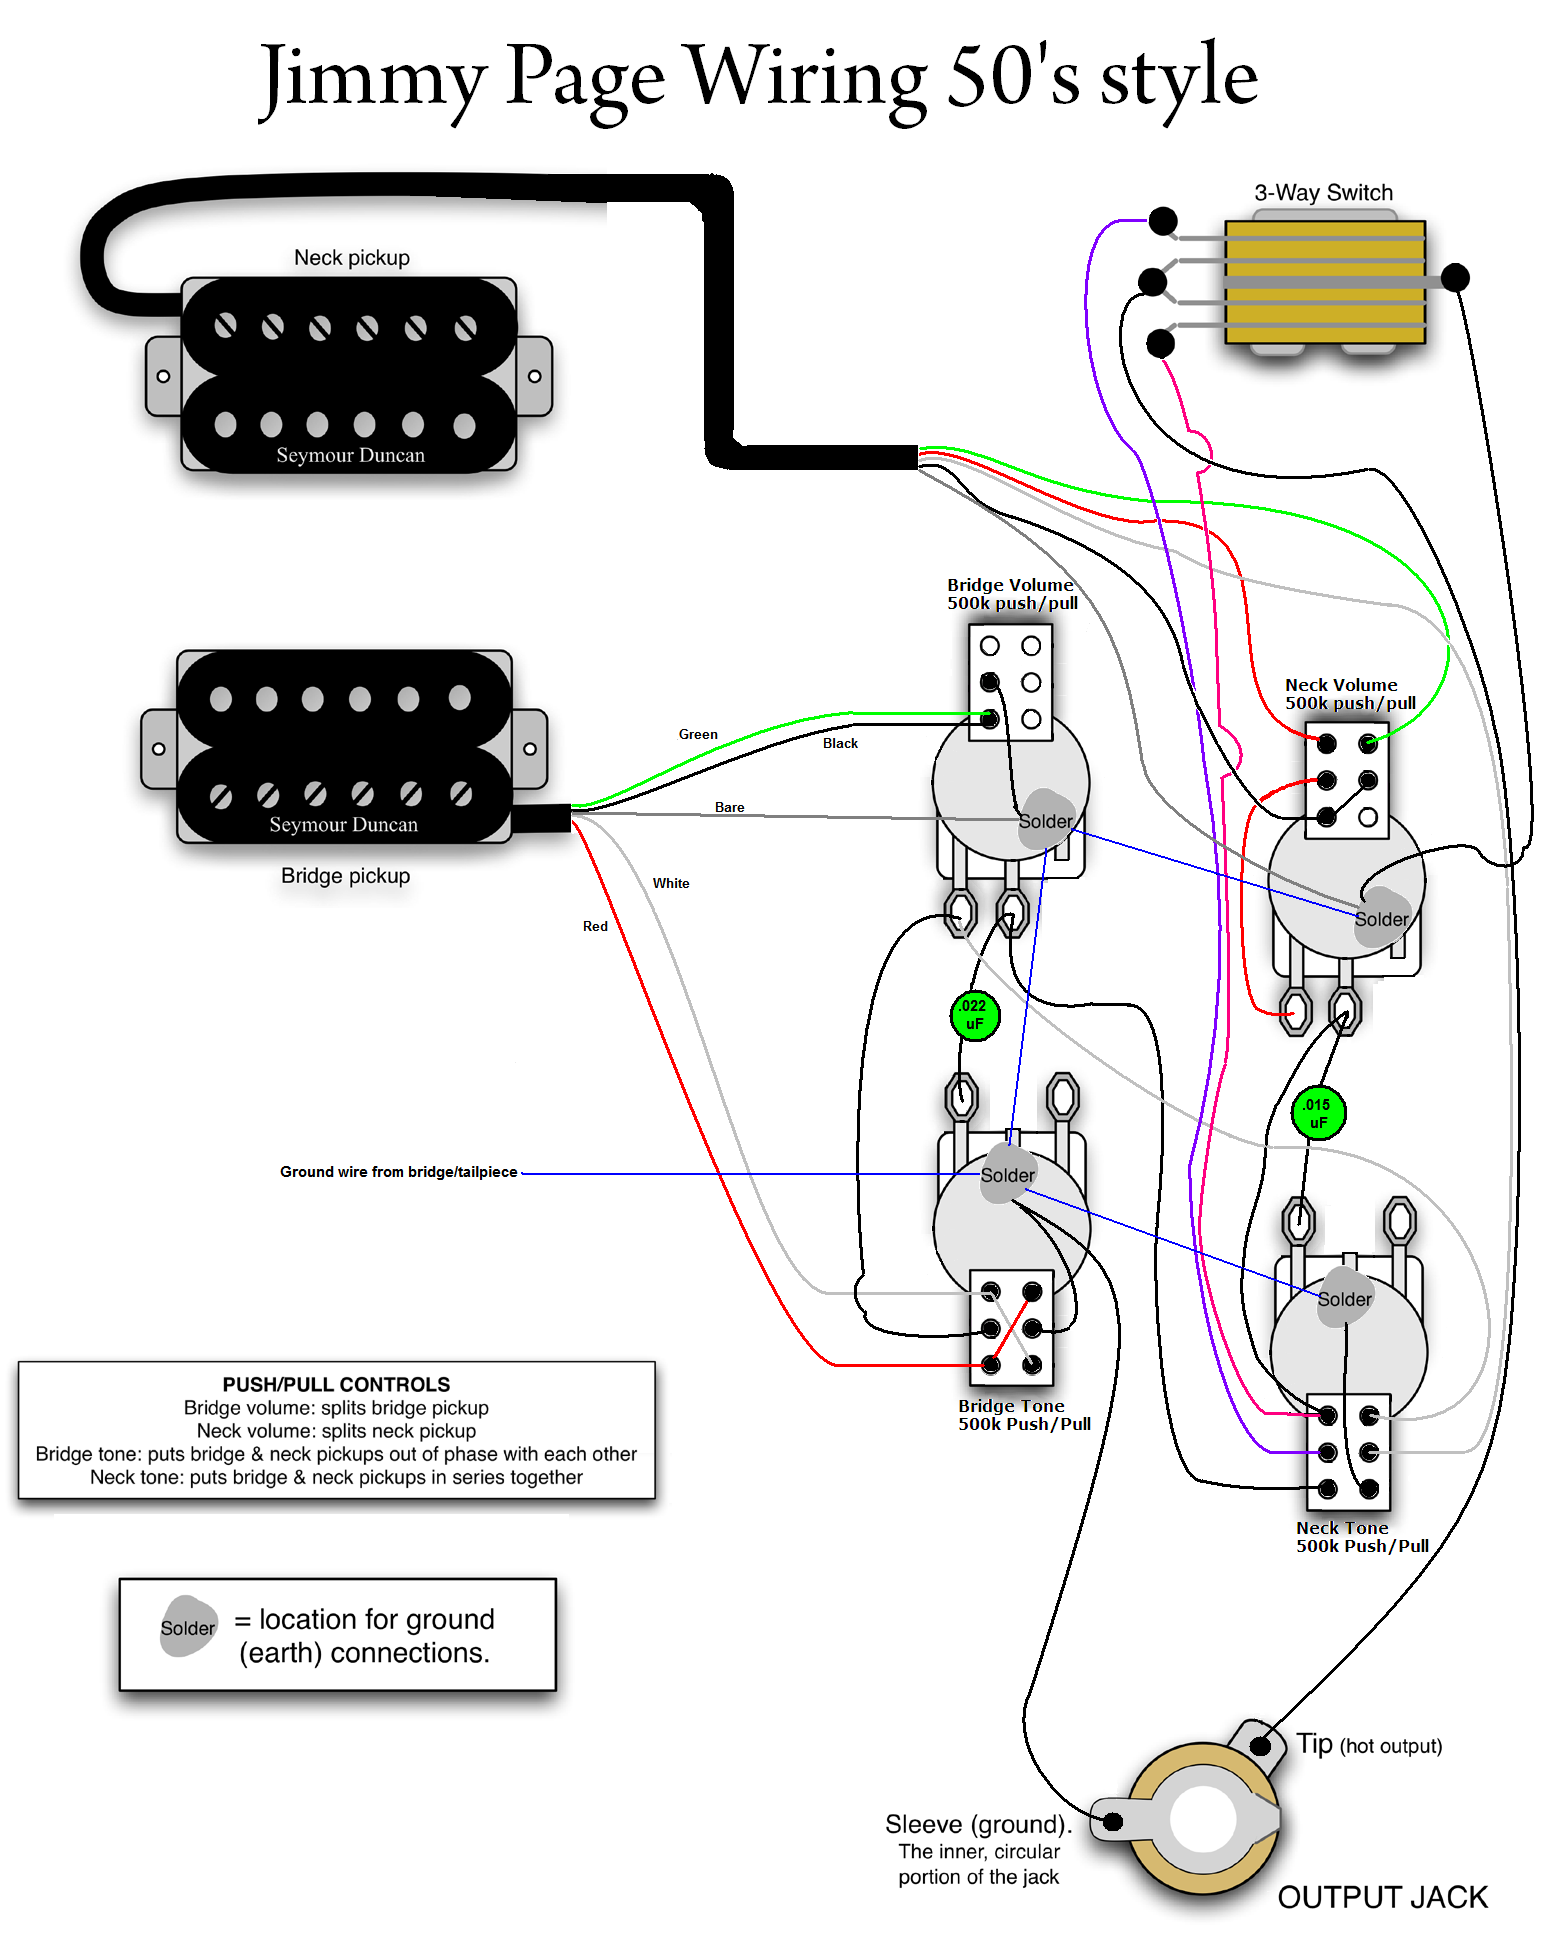 medium resolution of jimmy page 50s wiring mylespaul com instruments in 2019 guitar gibson jimmy page wiring diagram